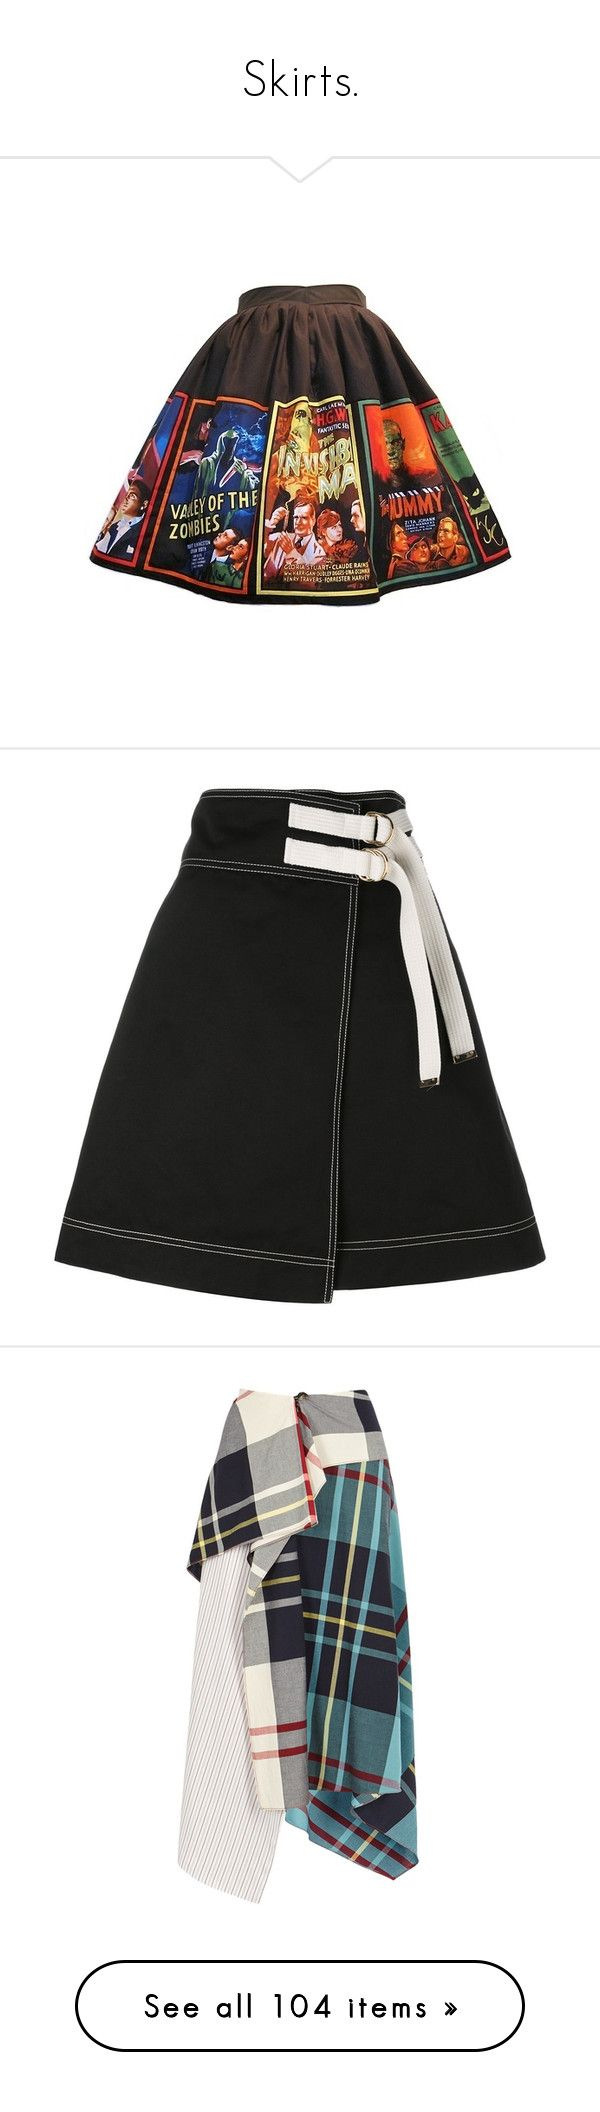 """Skirts."" by jooniejoonie ❤ liked on Polyvore featuring skirts, bottoms, black, wrap around skirt, wrap skirt, wraparound skirt, marni, marni skirt, multi color skirt and colorful skirts"